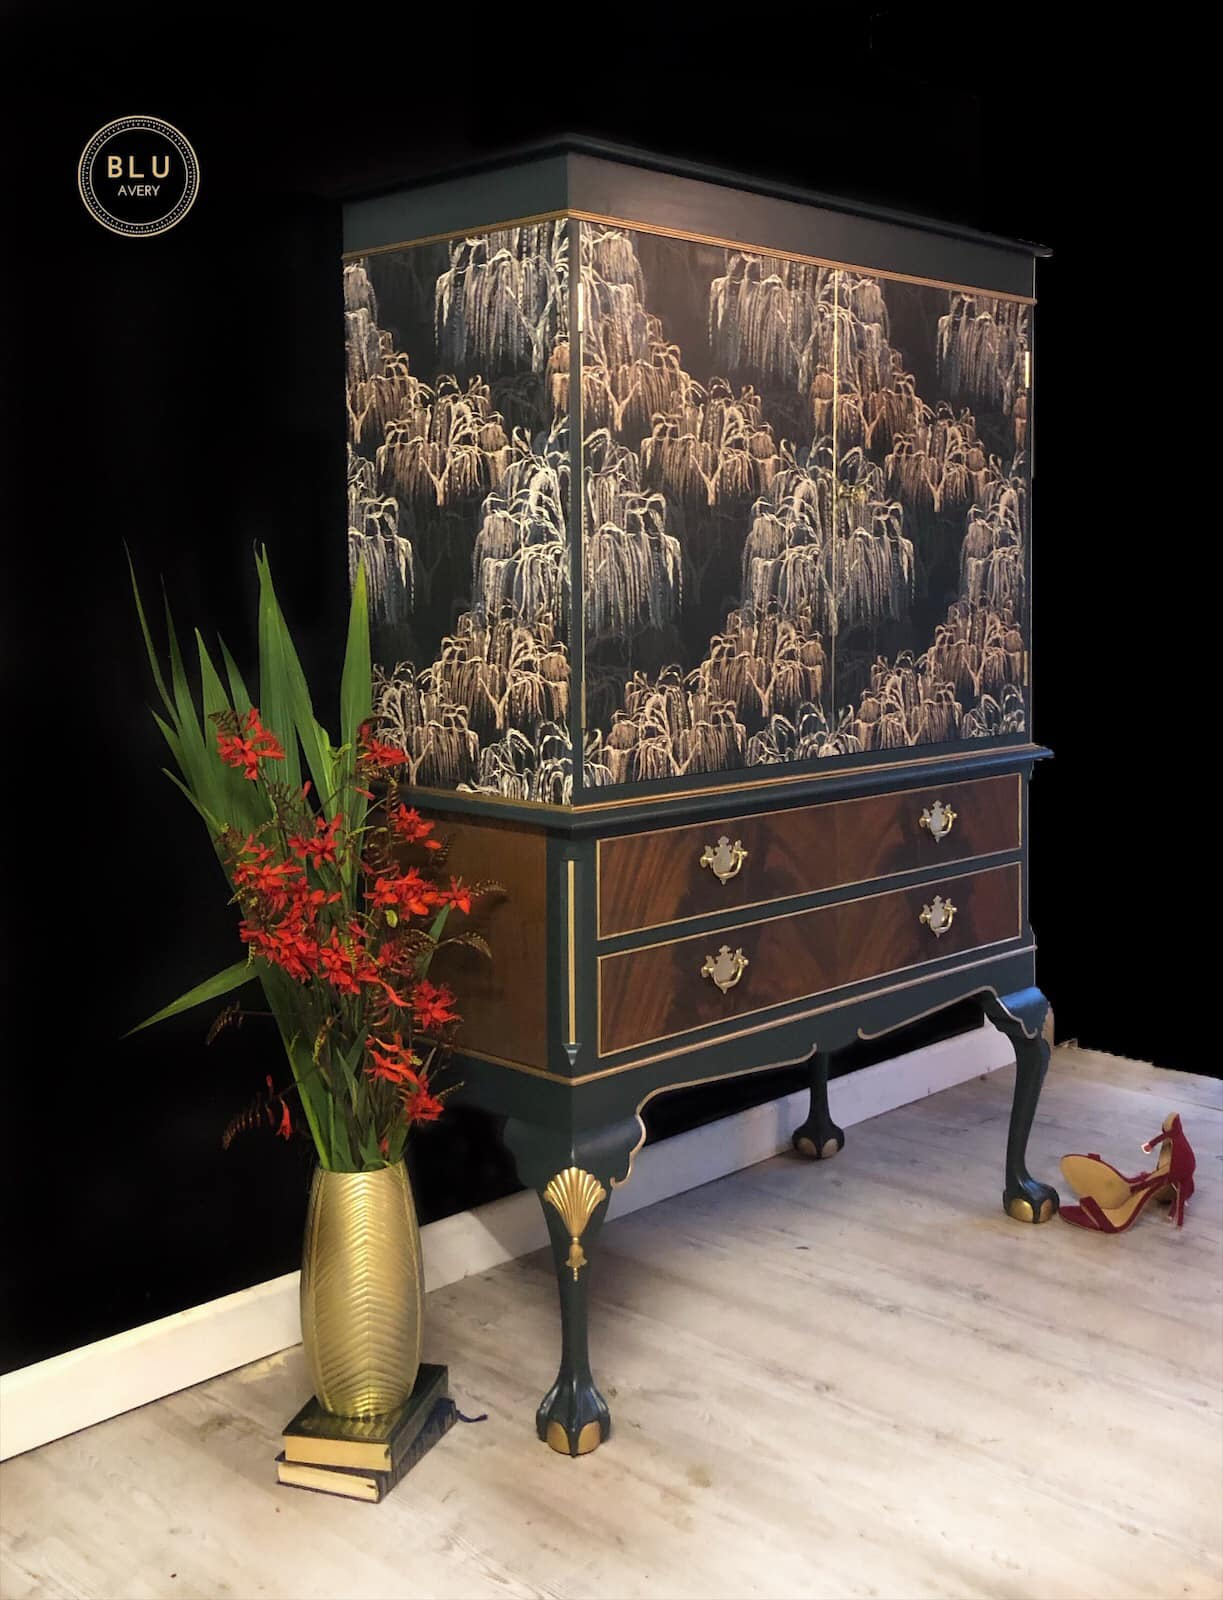 The House of Upcycling: Blu Avery Designs Refinished Cocktail Cabinet